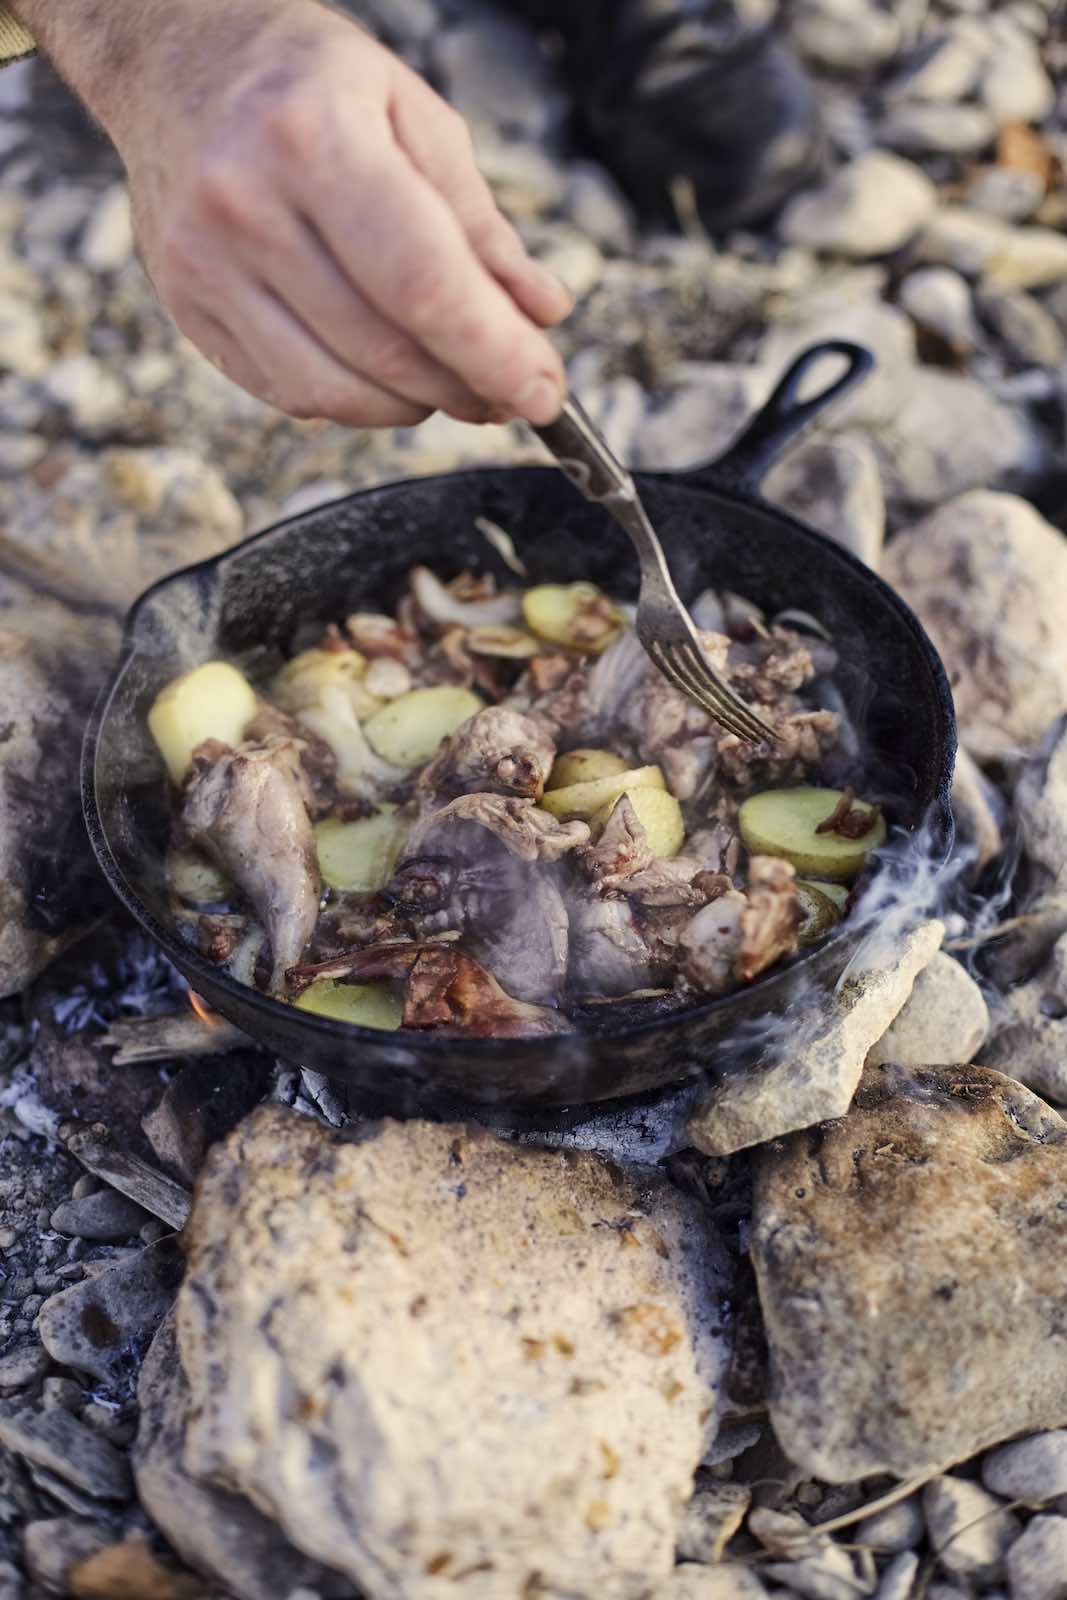 Jody Horton Photography - Meats and vegetables cooking in a cast iron skillet on an camp fire.